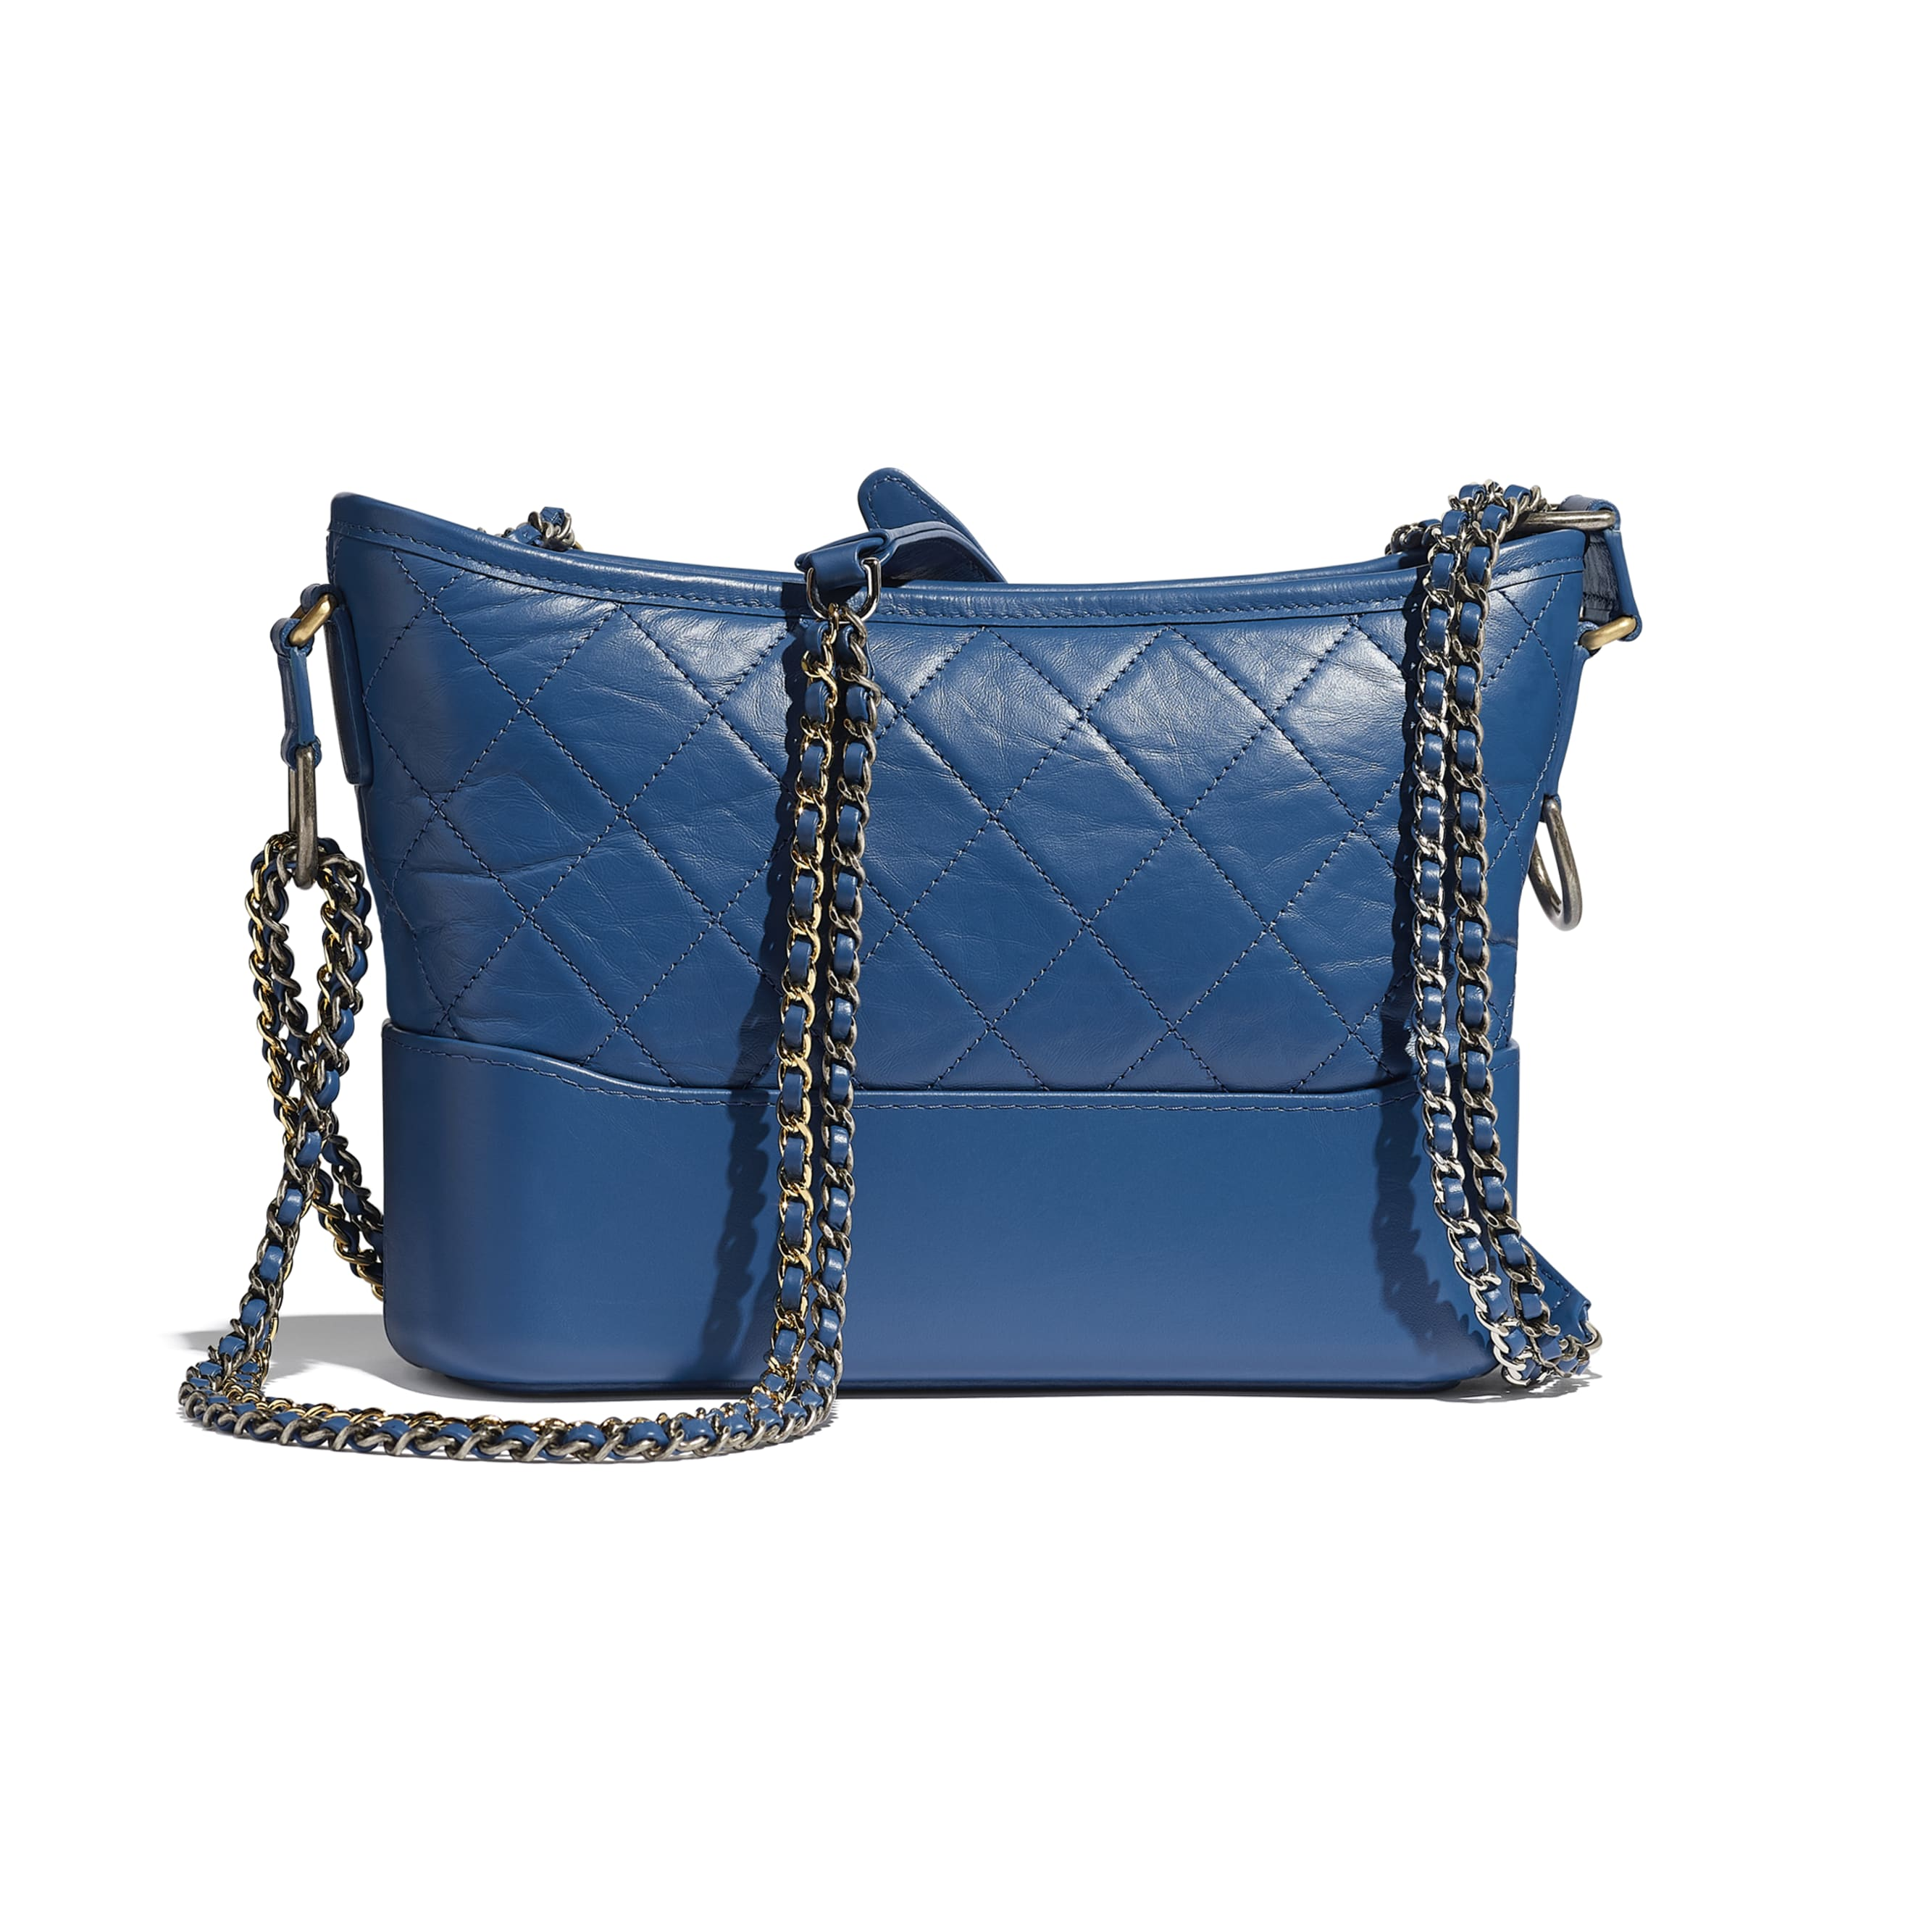 CHANEL'S GABRIELLE Hobo Handbag - Dark Blue - Aged Calfskin, Smooth Calfskin, Silver-Tone & Gold-Tone Metal - Alternative view - see standard sized version